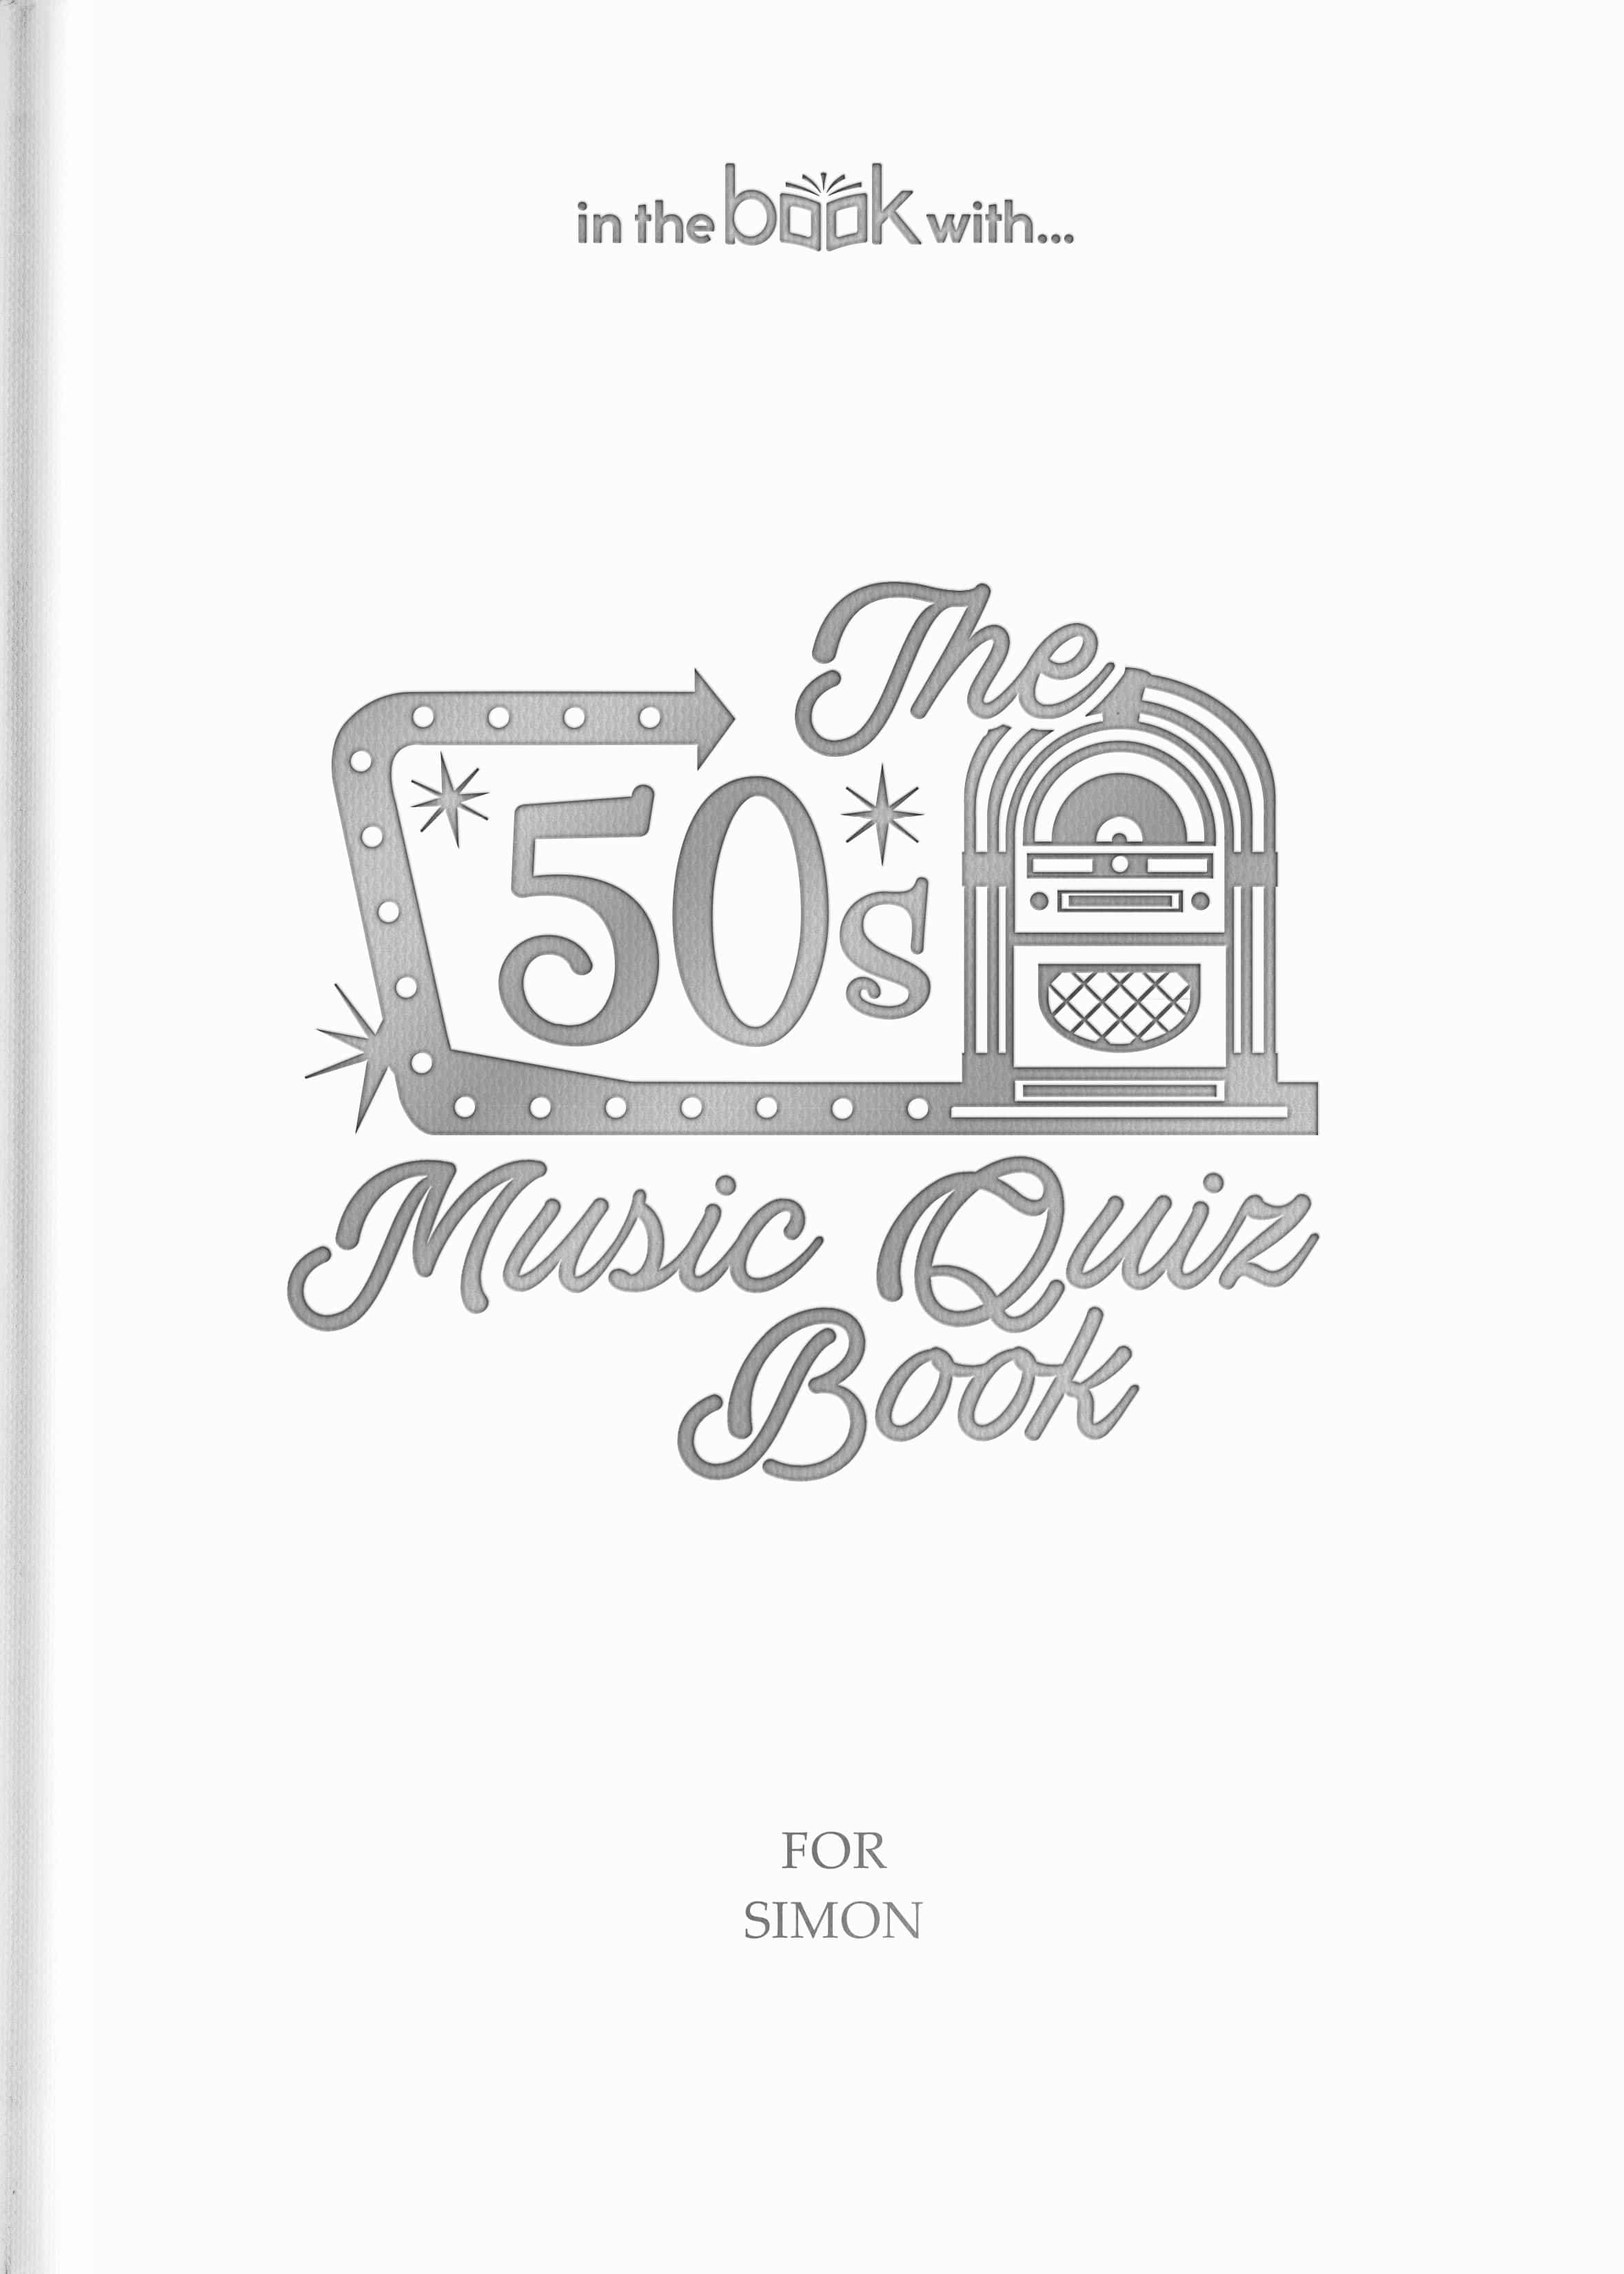 50s personalized music book